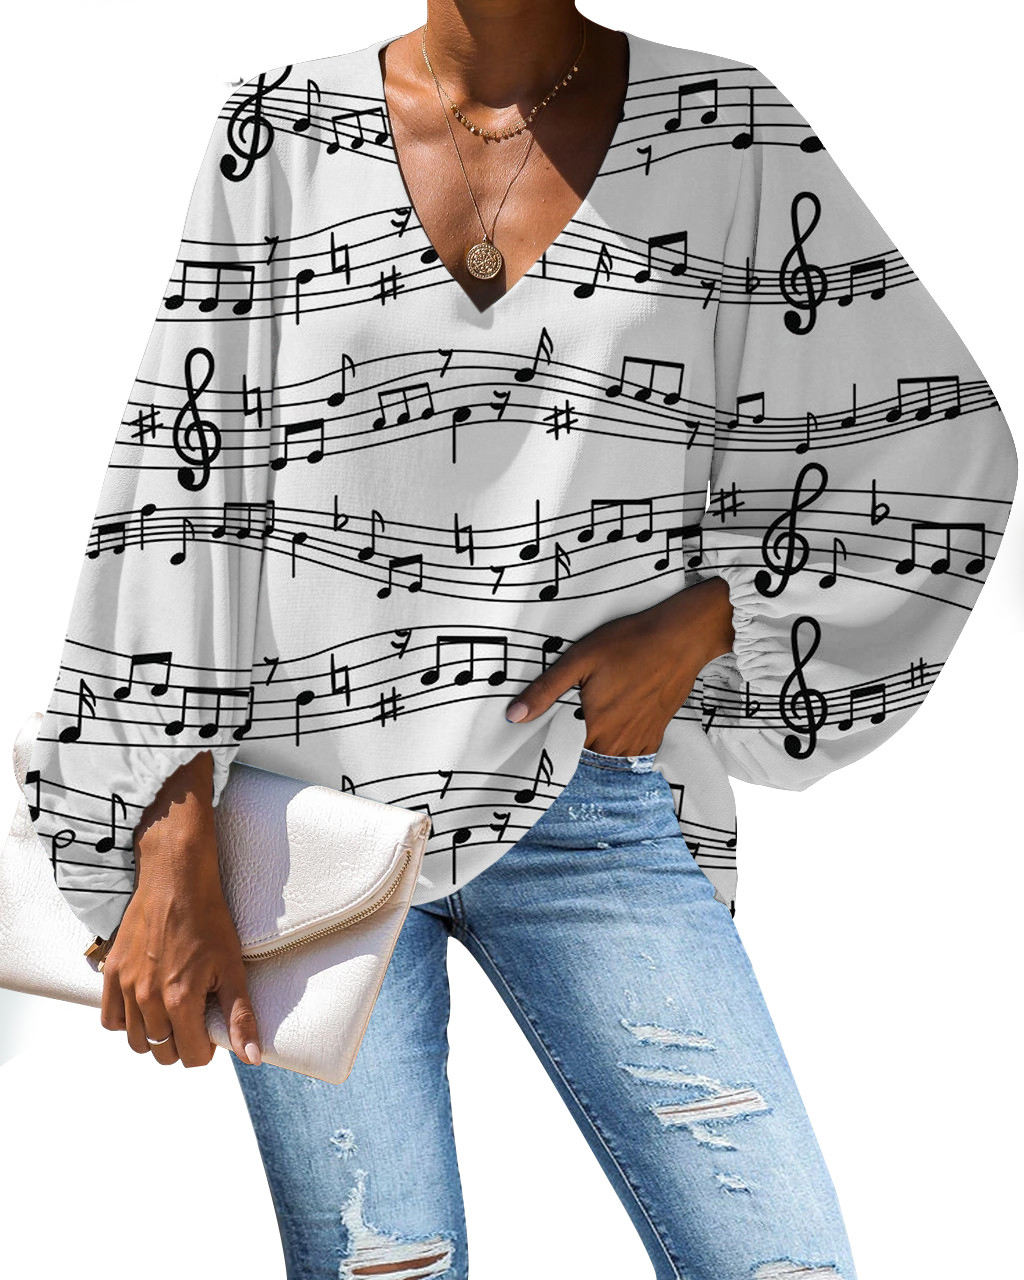 cheap wholesale blouse plus size Musical Notes printed long sleeve women blouse casual tops luxury women blouse 2021 summer tees